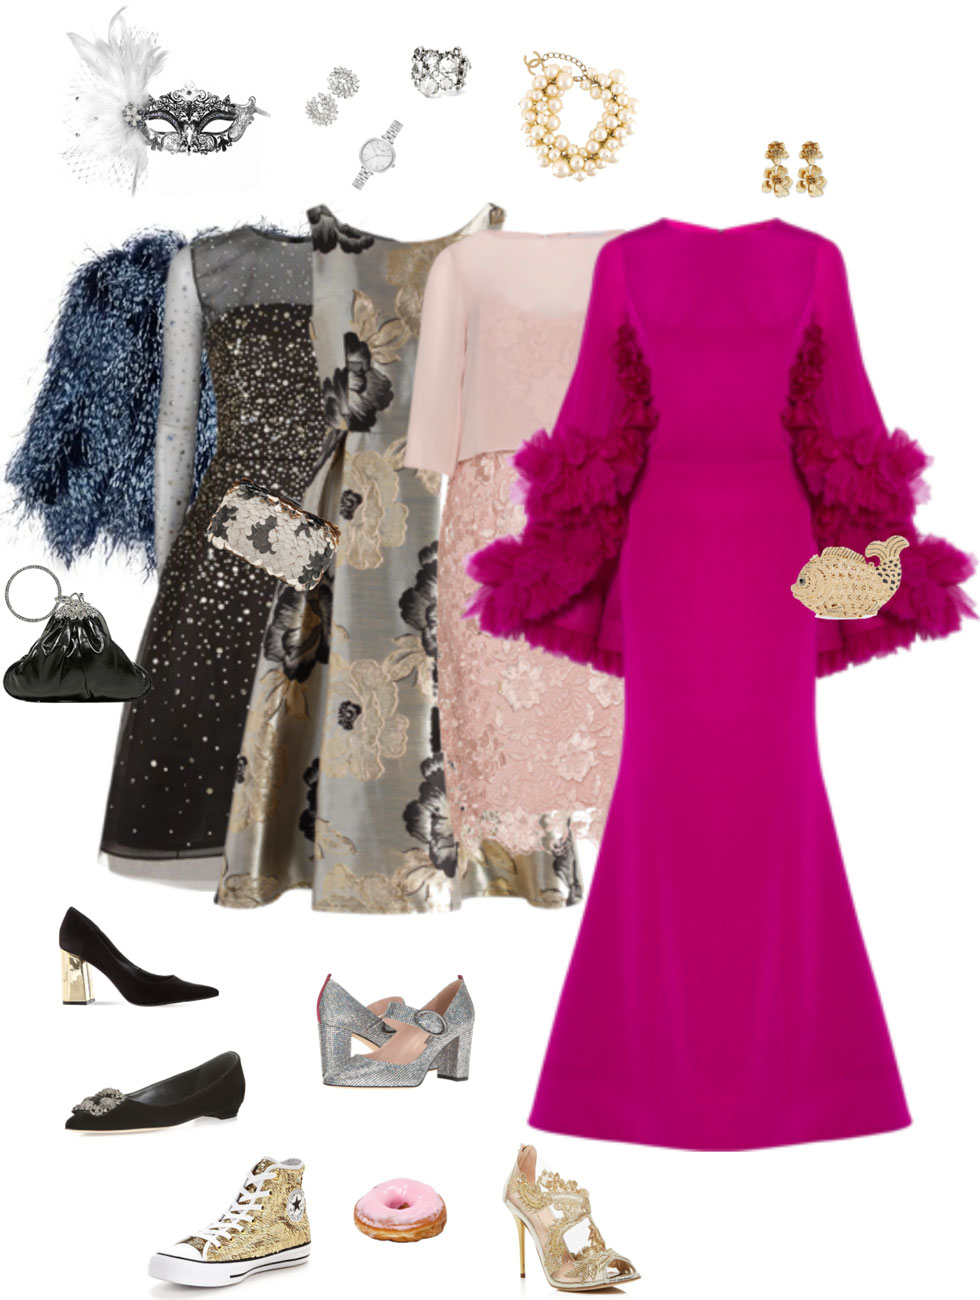 Ensemble Style Advice - Cinderella Goes to the Ball